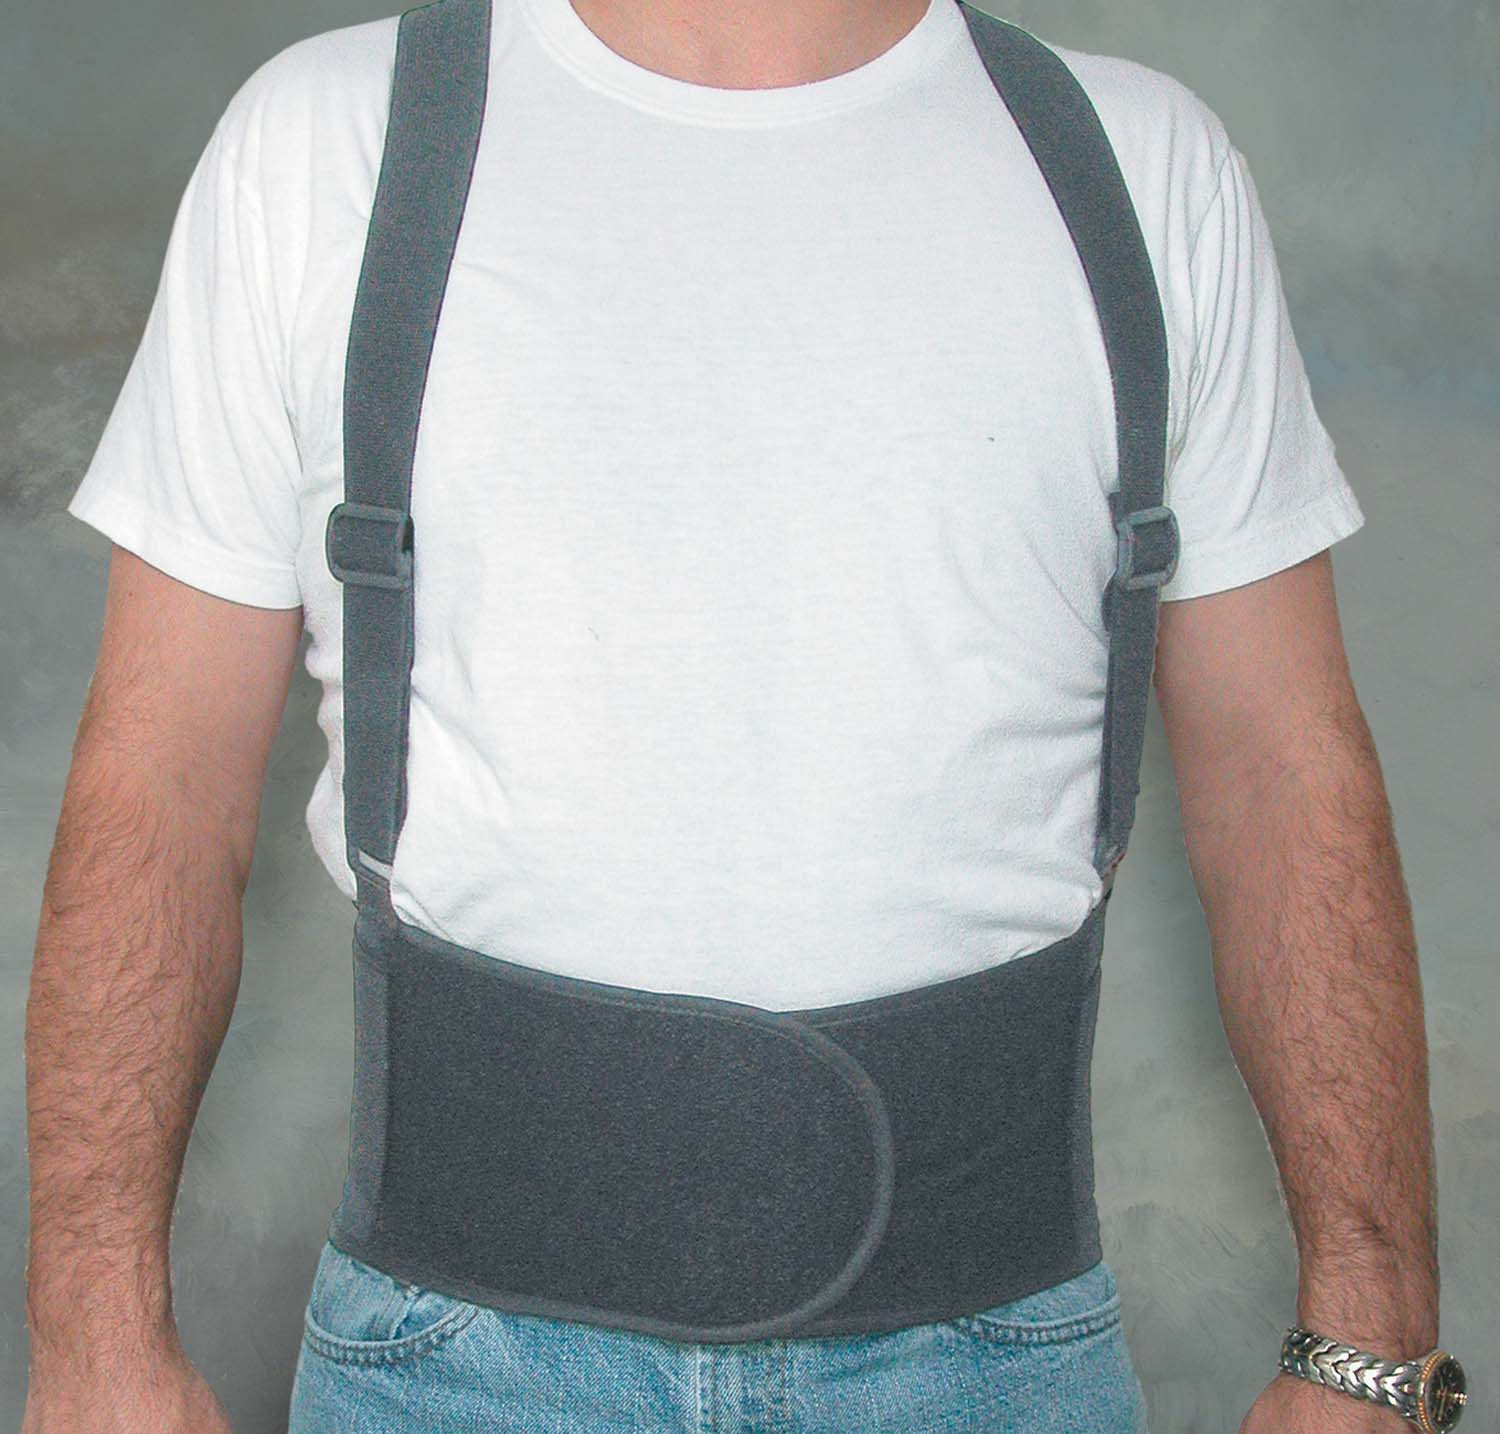 industrial-lumbar-support-w-shoulder-straps-medium-632-6390-0222-lr-2.jpg